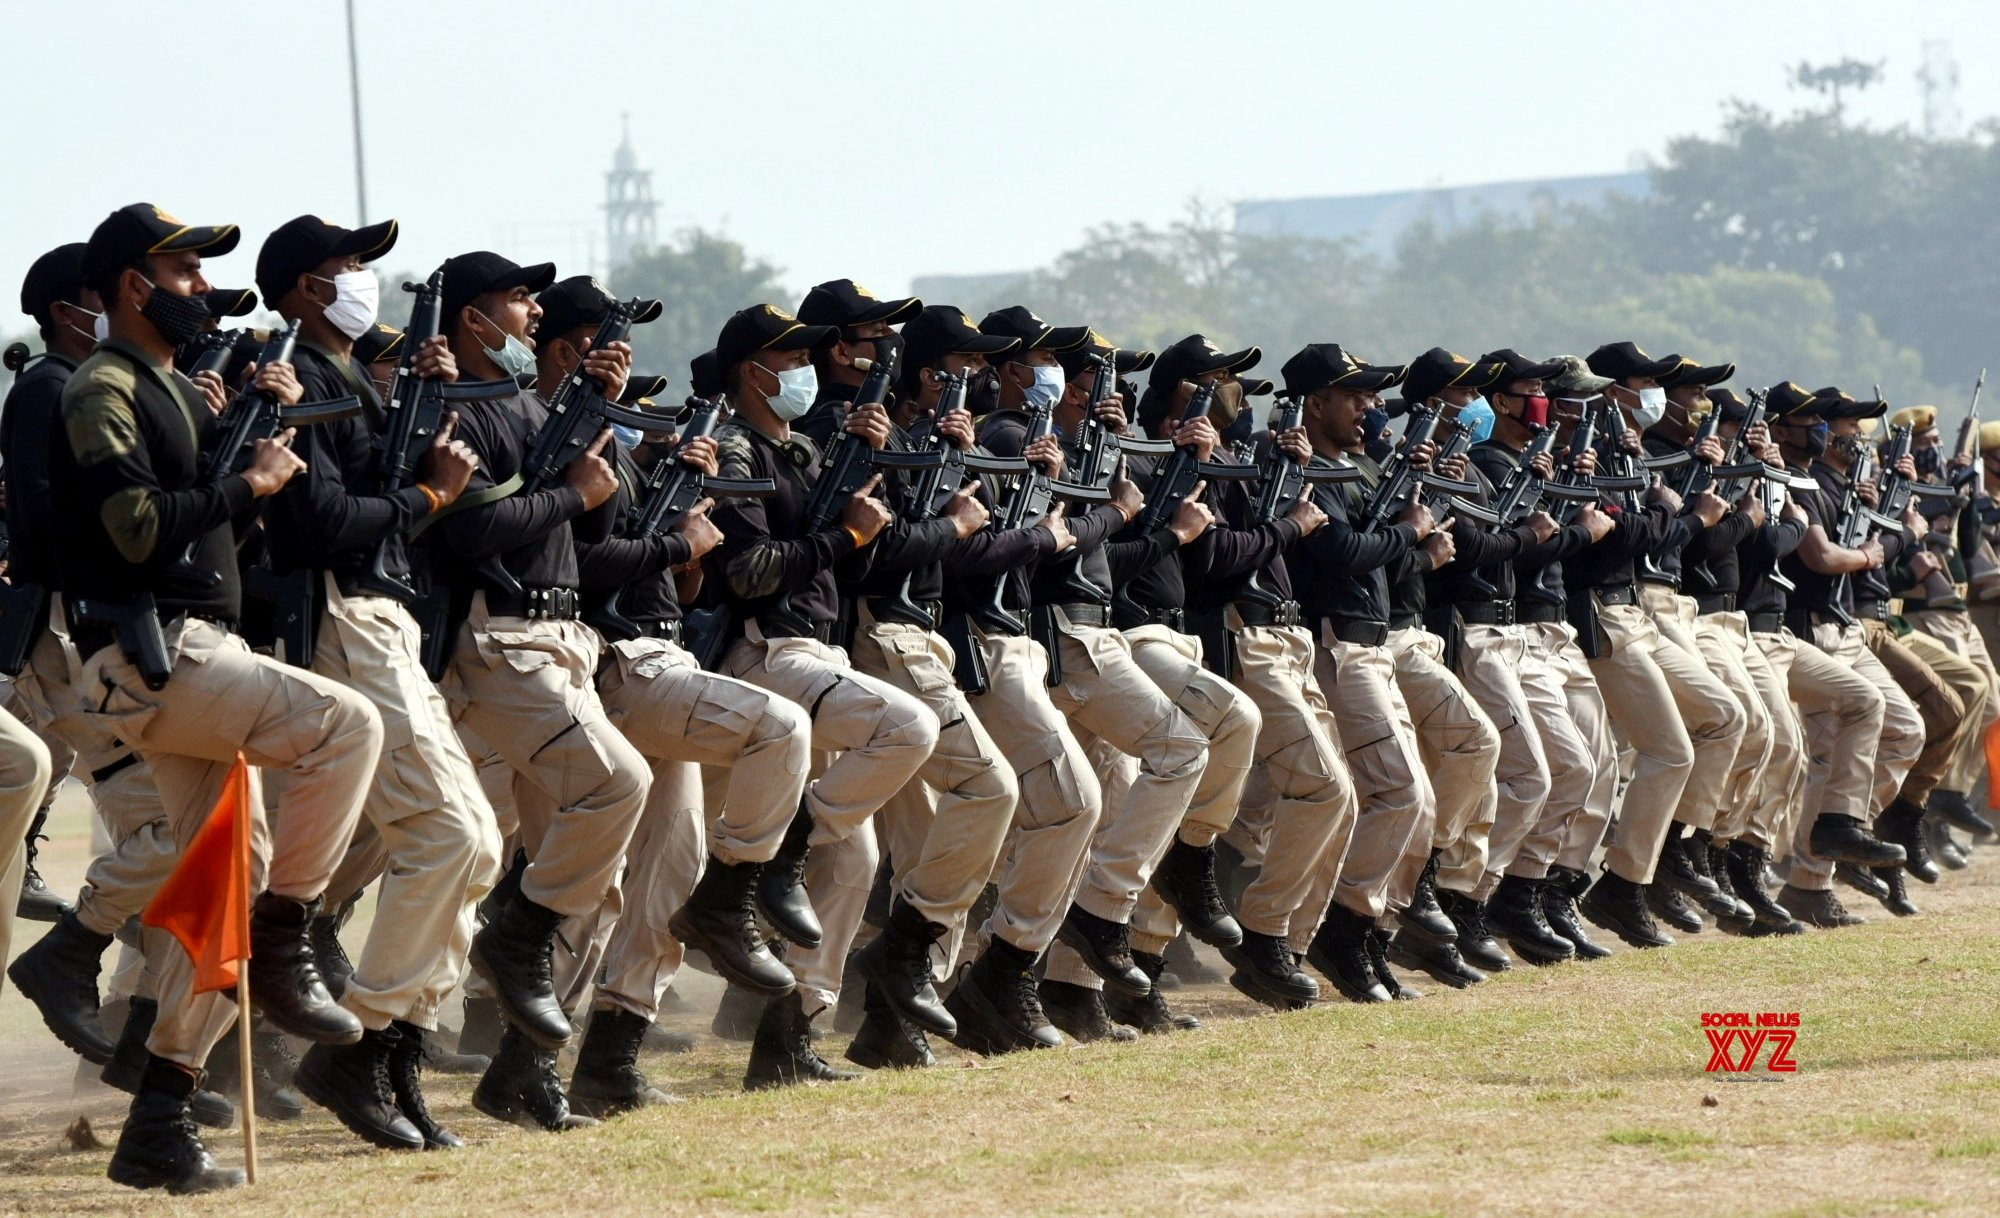 Patna: - A contingent of National Security Guard (NSG)s during the Republic Day parade rehearsals at Gandhi Maidan #Gallery